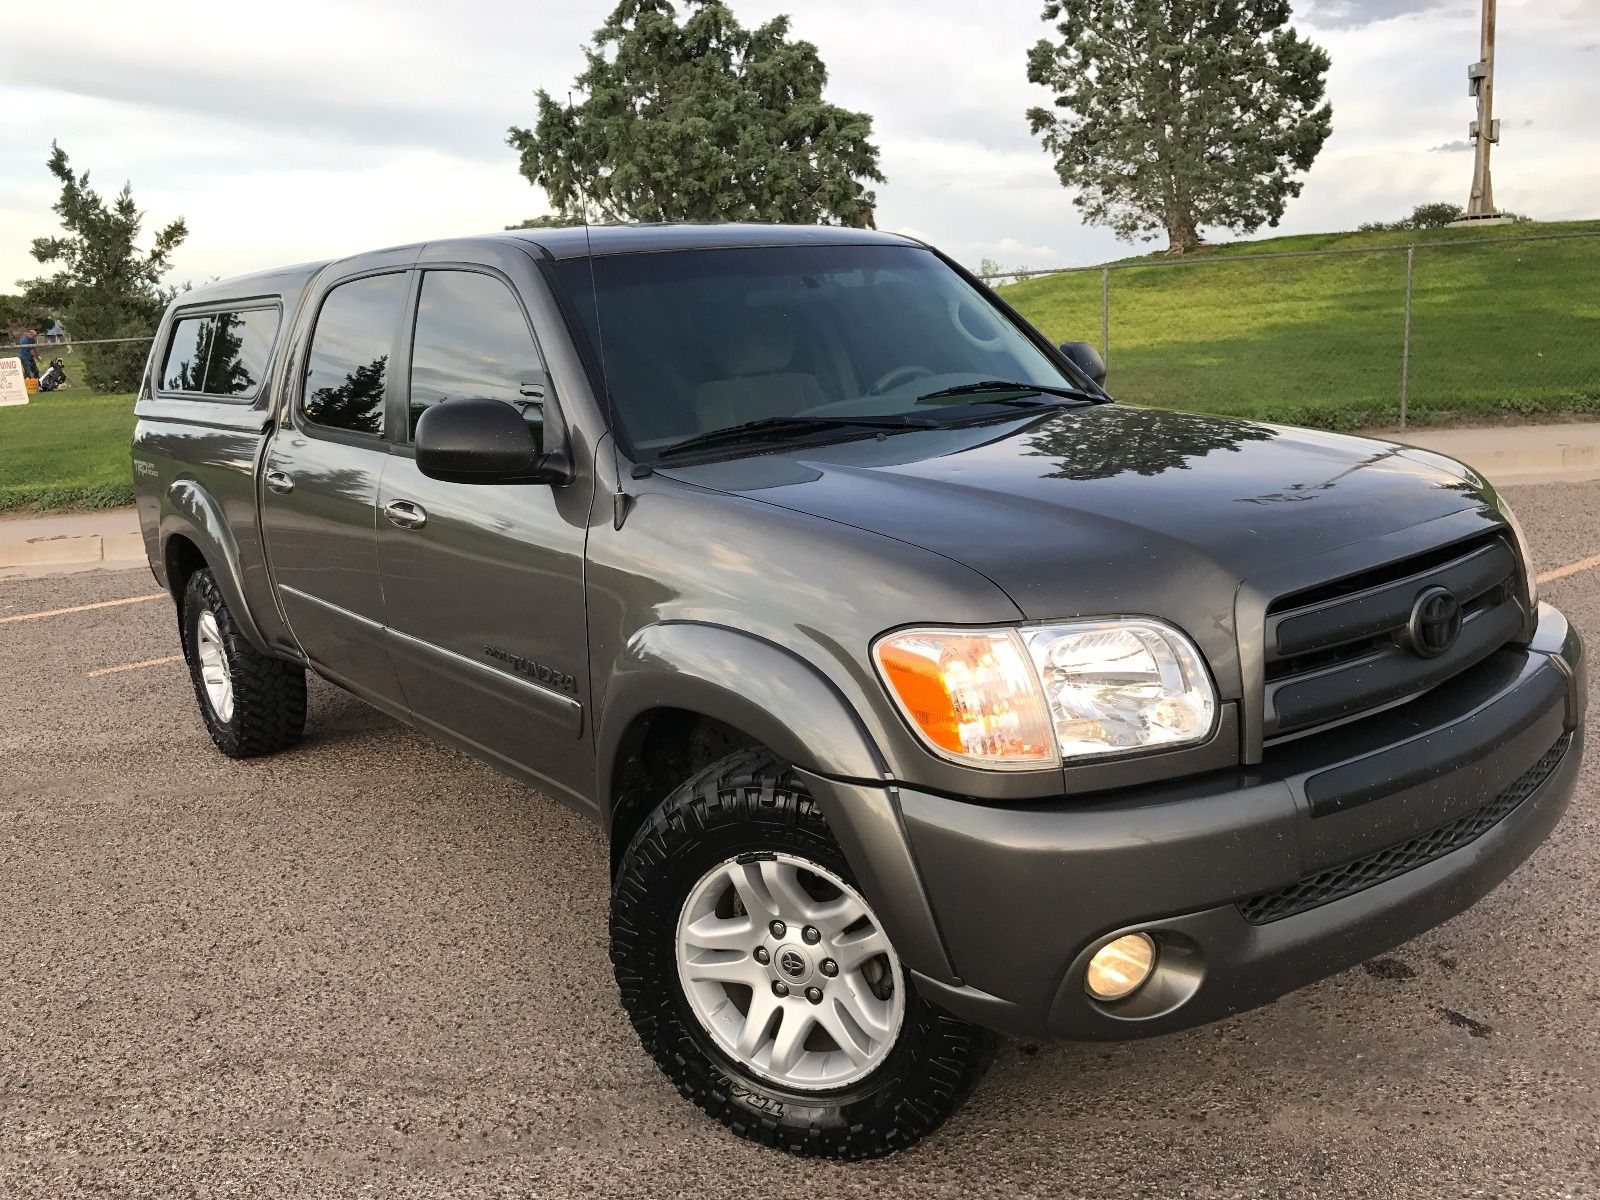 Tundra Towing Capacity >> Extra camper shell 2005 Toyota Tundra trd 4×4 for sale